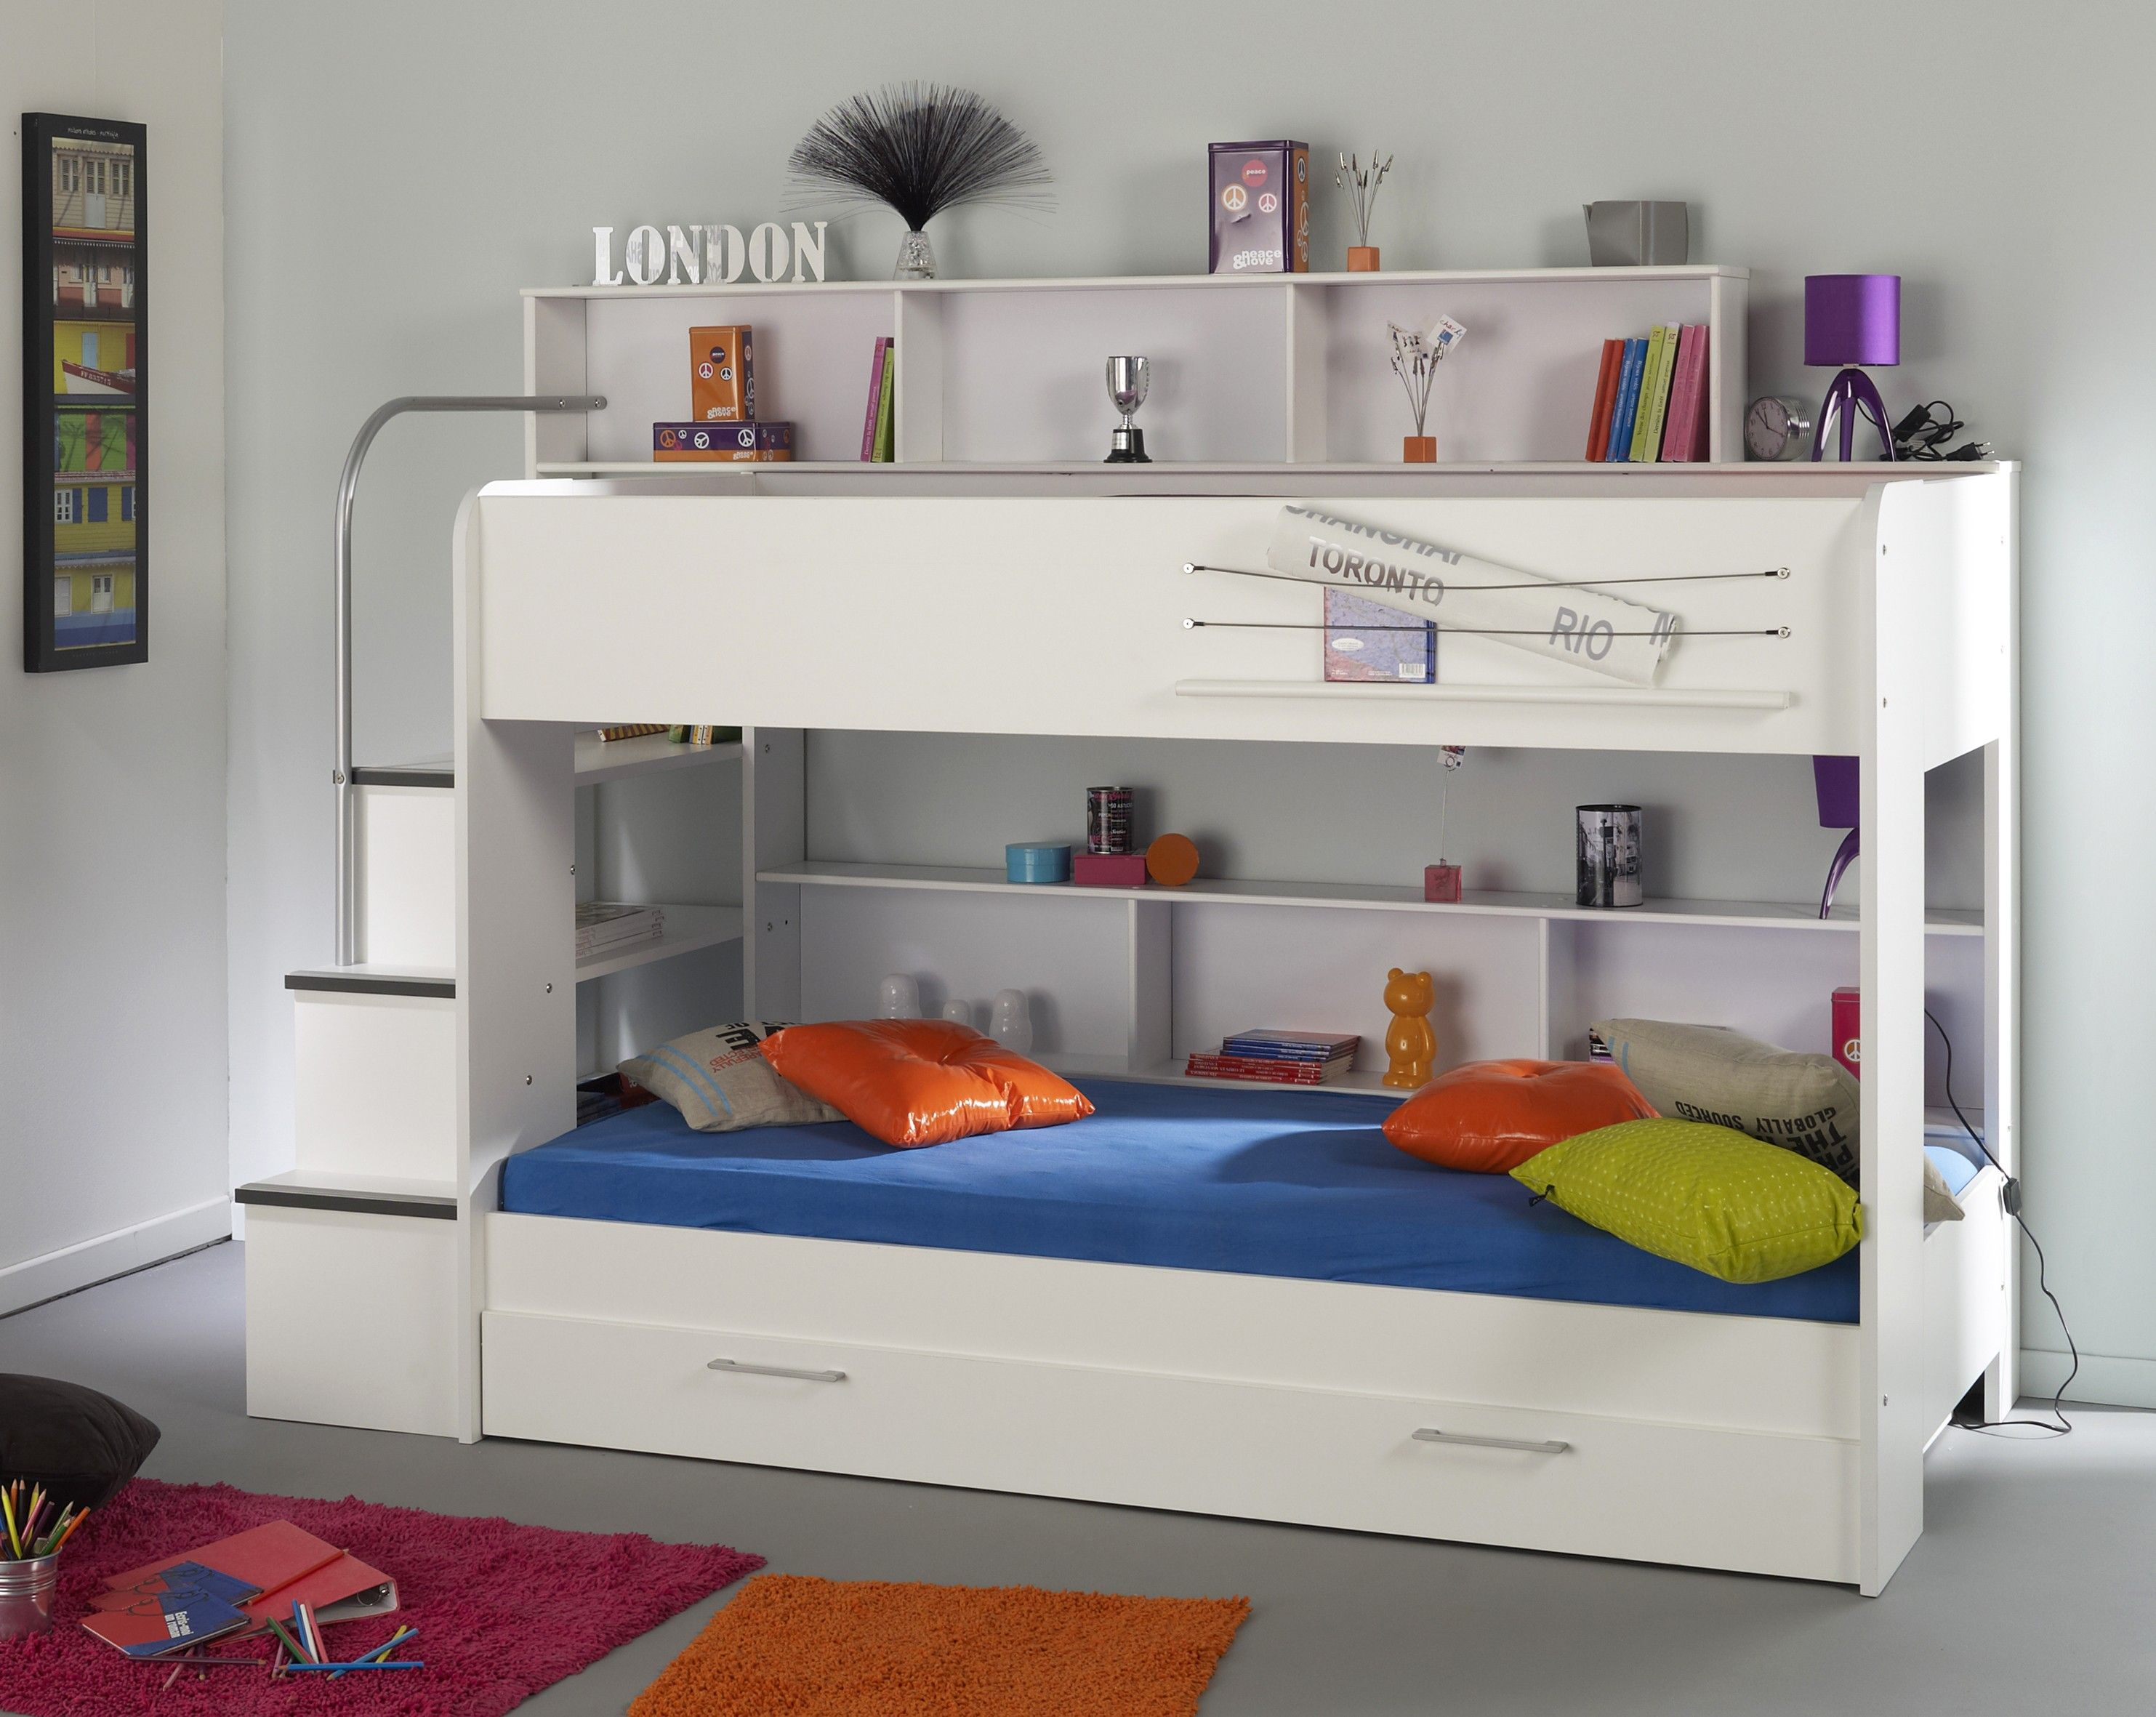 Parisot Kurt 2 Bunk Bed This Is Great For A Small Room Like Mine Buy It When Its On Sale In January It Can B